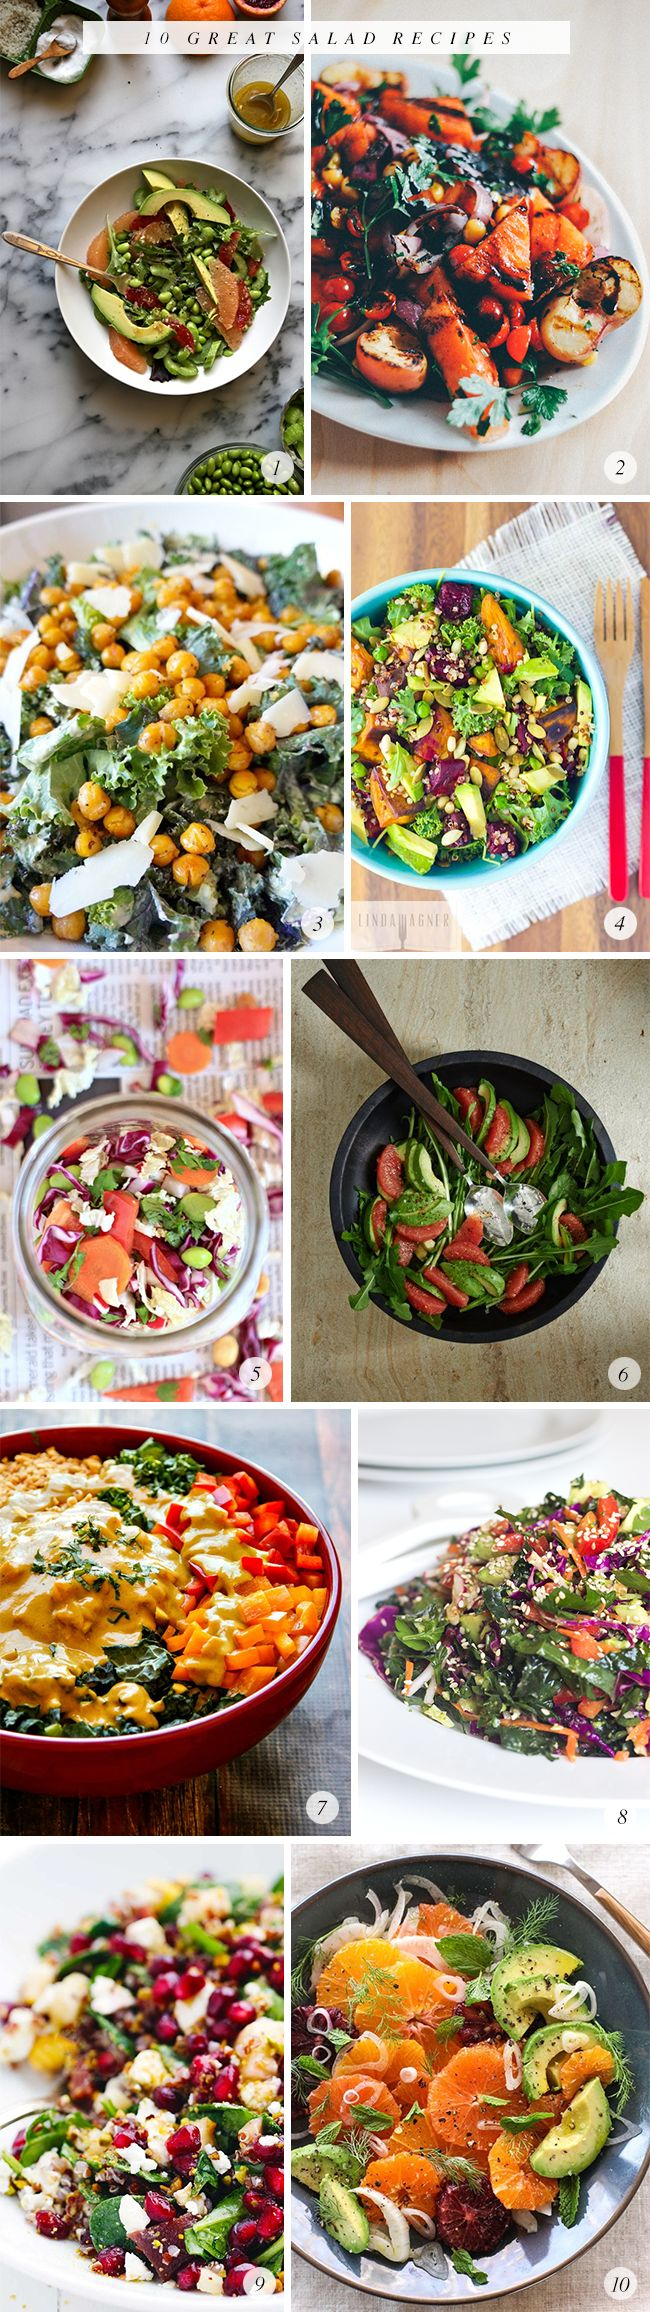 10 Great Salad Recipes